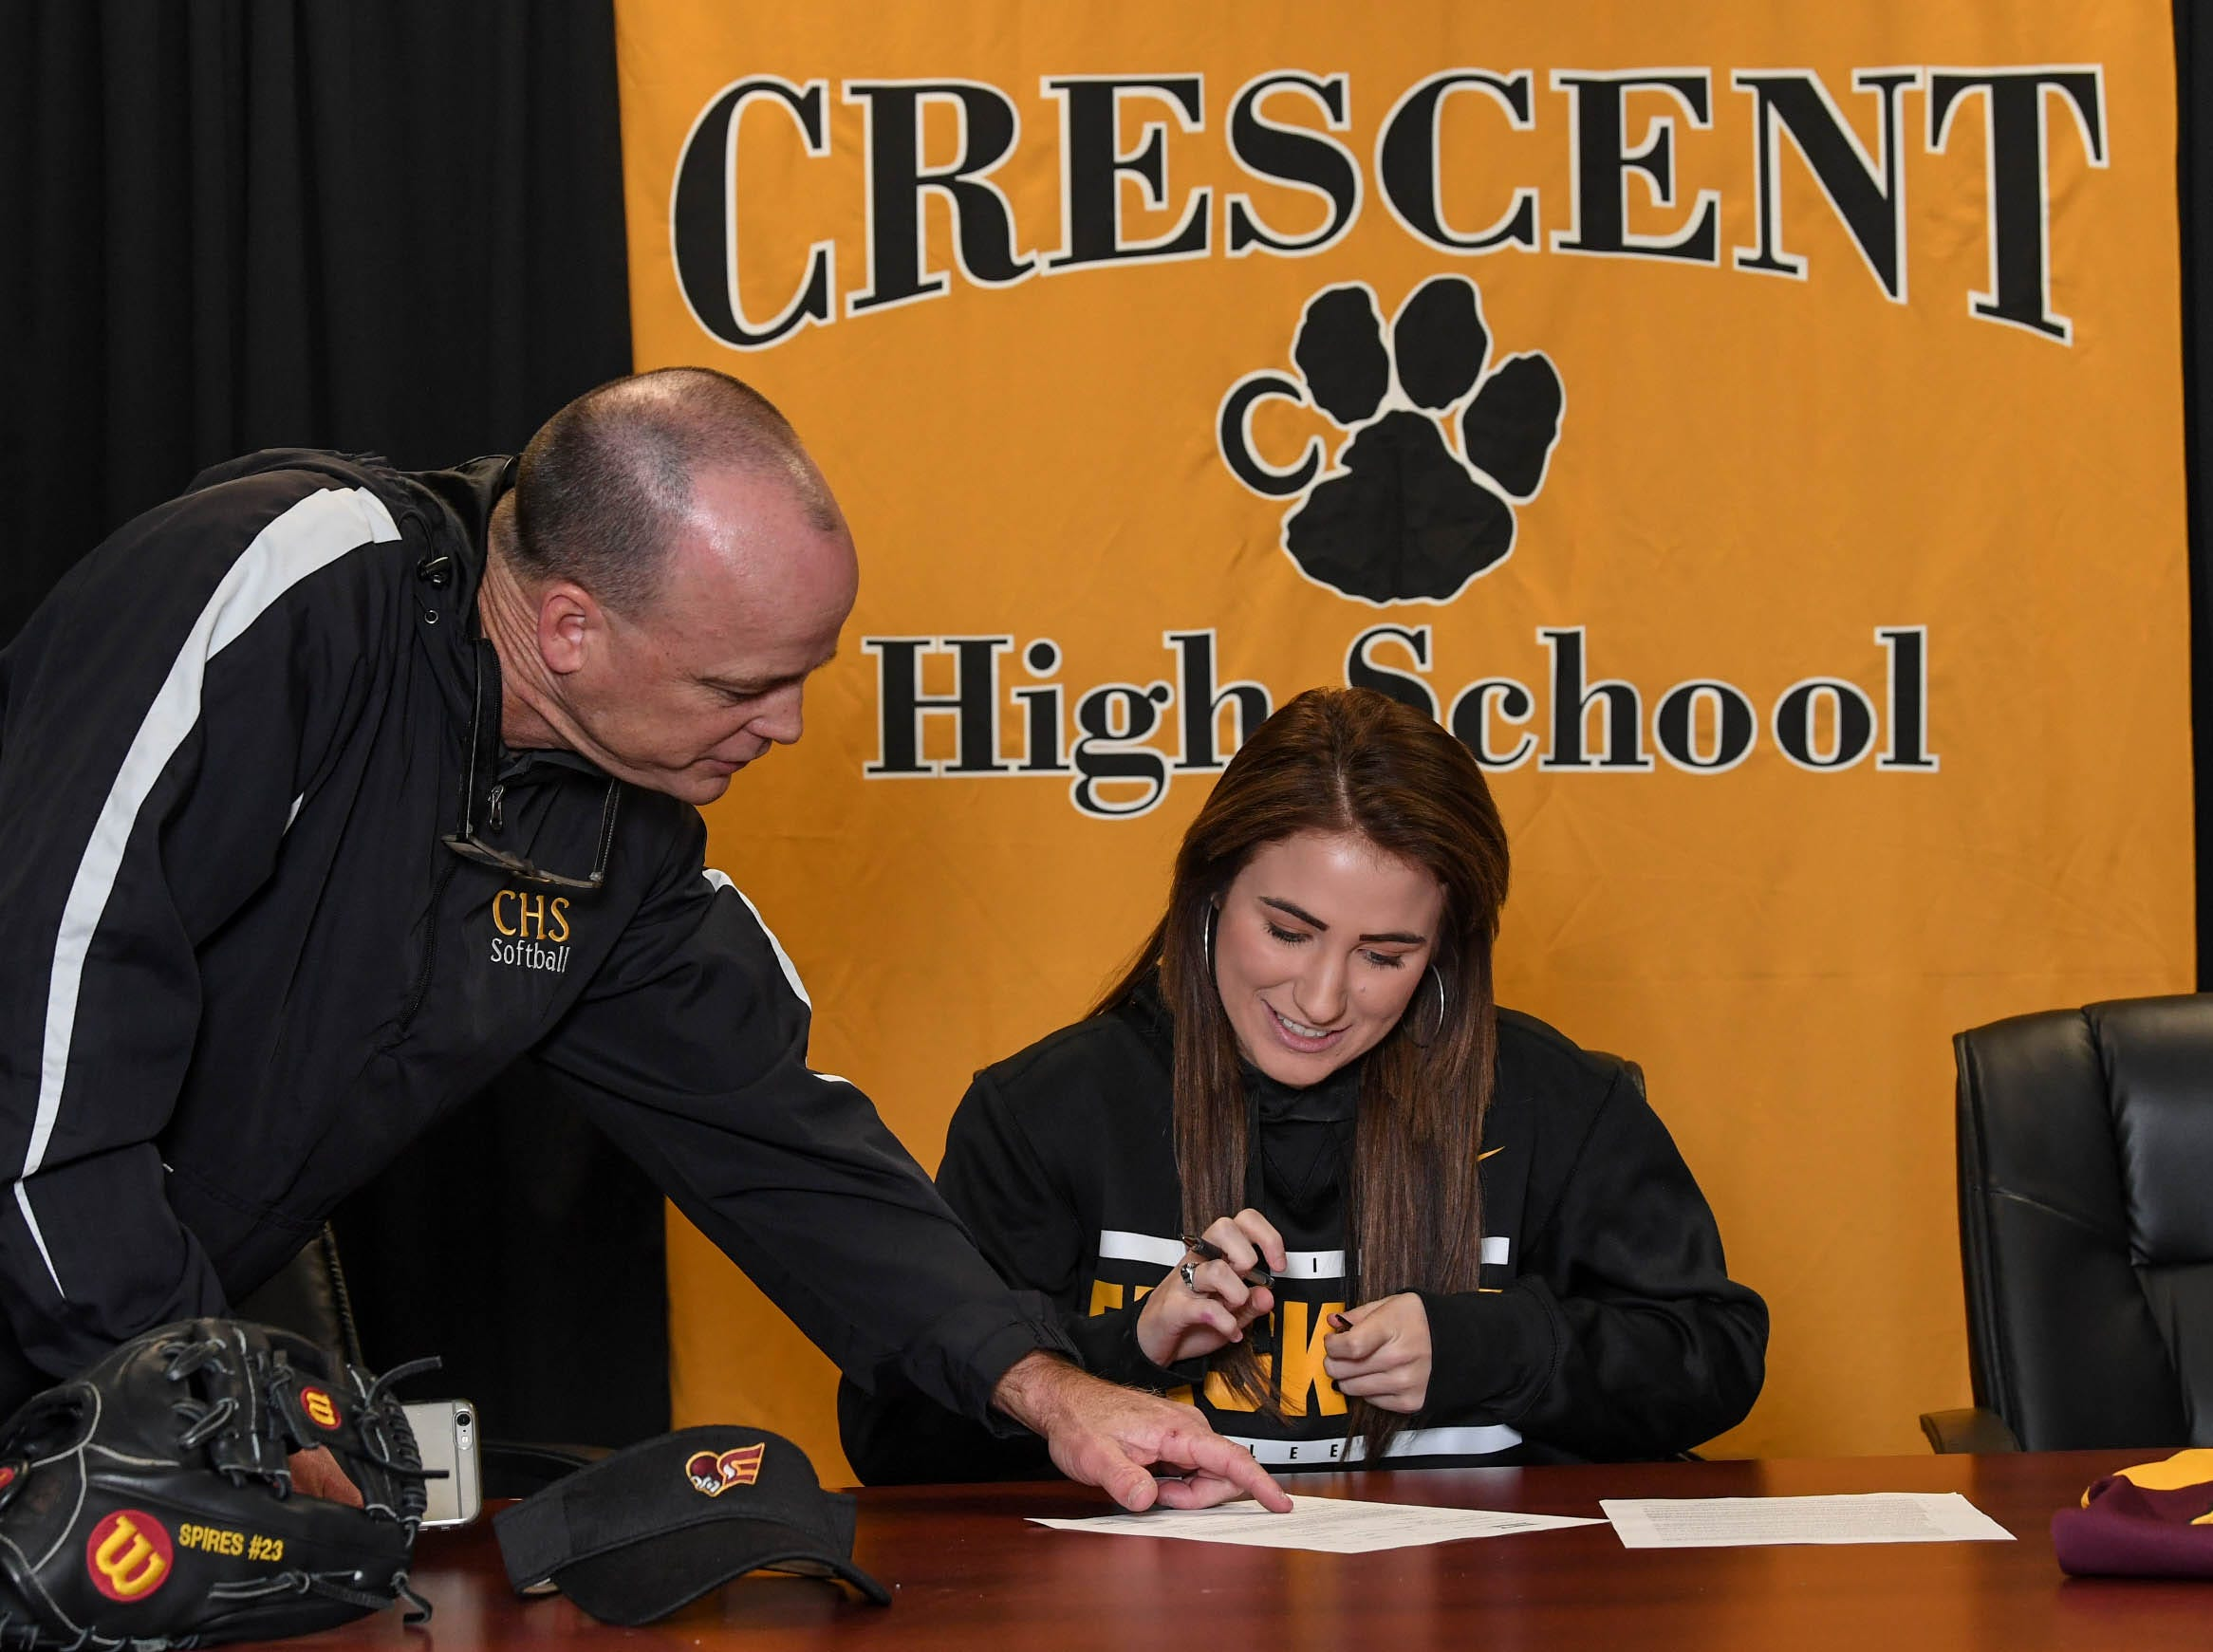 Jeff Craft, left, Crescent High School Athletic Director, looks at a National Letter of Intent form with Katie Spires, signing to play softball at Erskine College, during a National Signing Day event at Crescent High School in Iva on Wedesday.